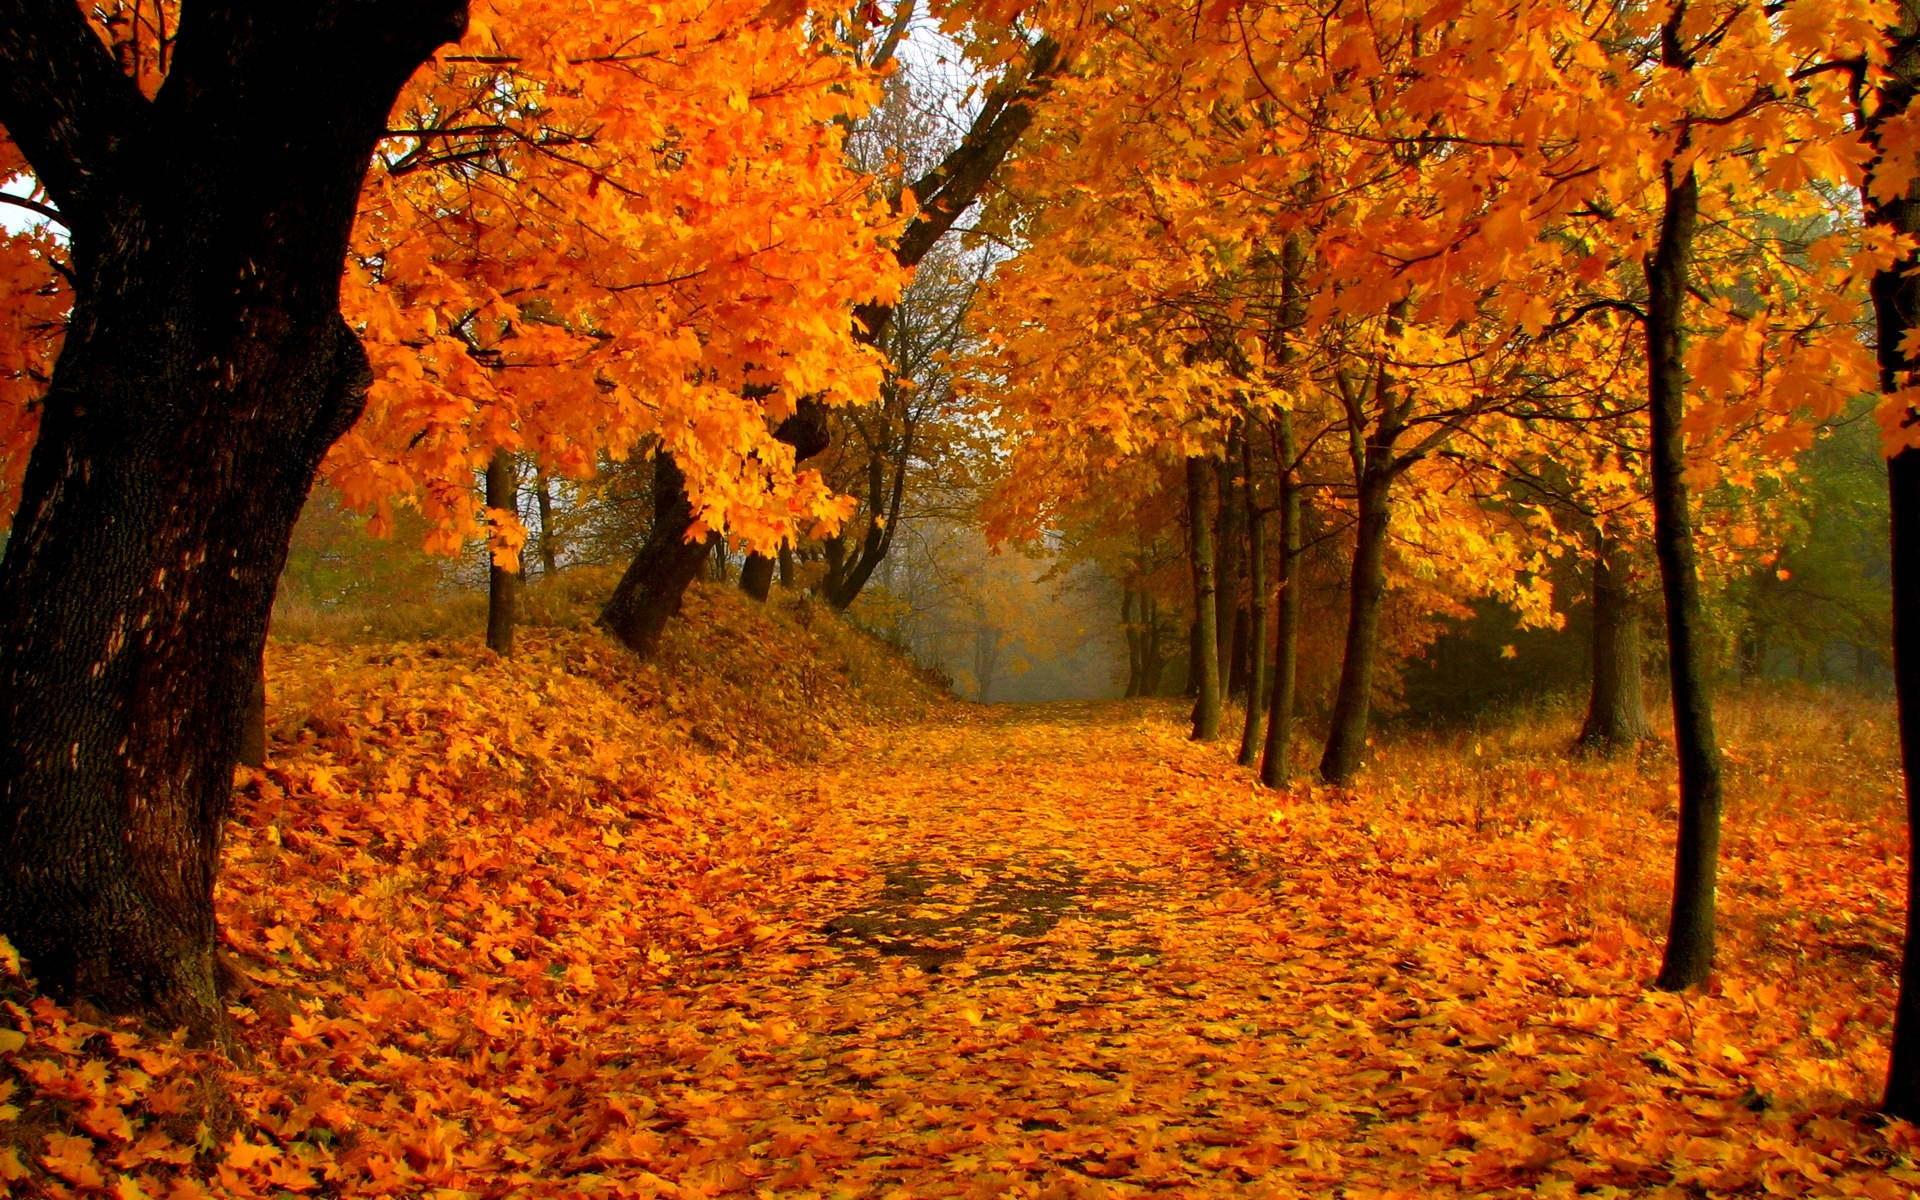 Fall Season Wallpapers Hd Fall Scenery Wallpapers Free Download Pixelstalk Net